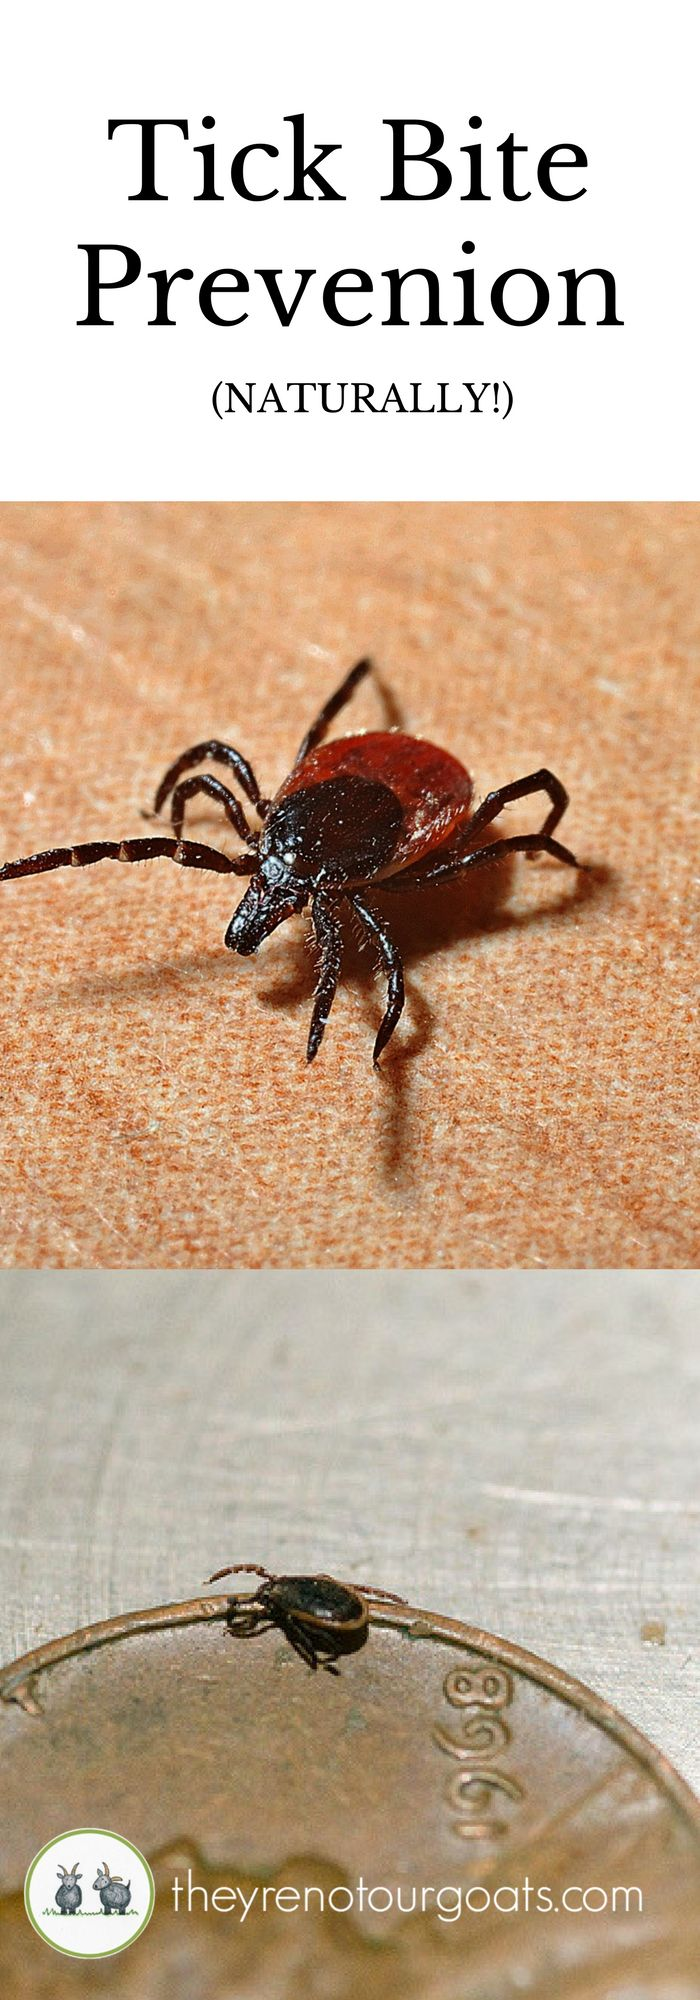 Take five minutes to learn simple, chemical-free ways to avoid tick bites this season.